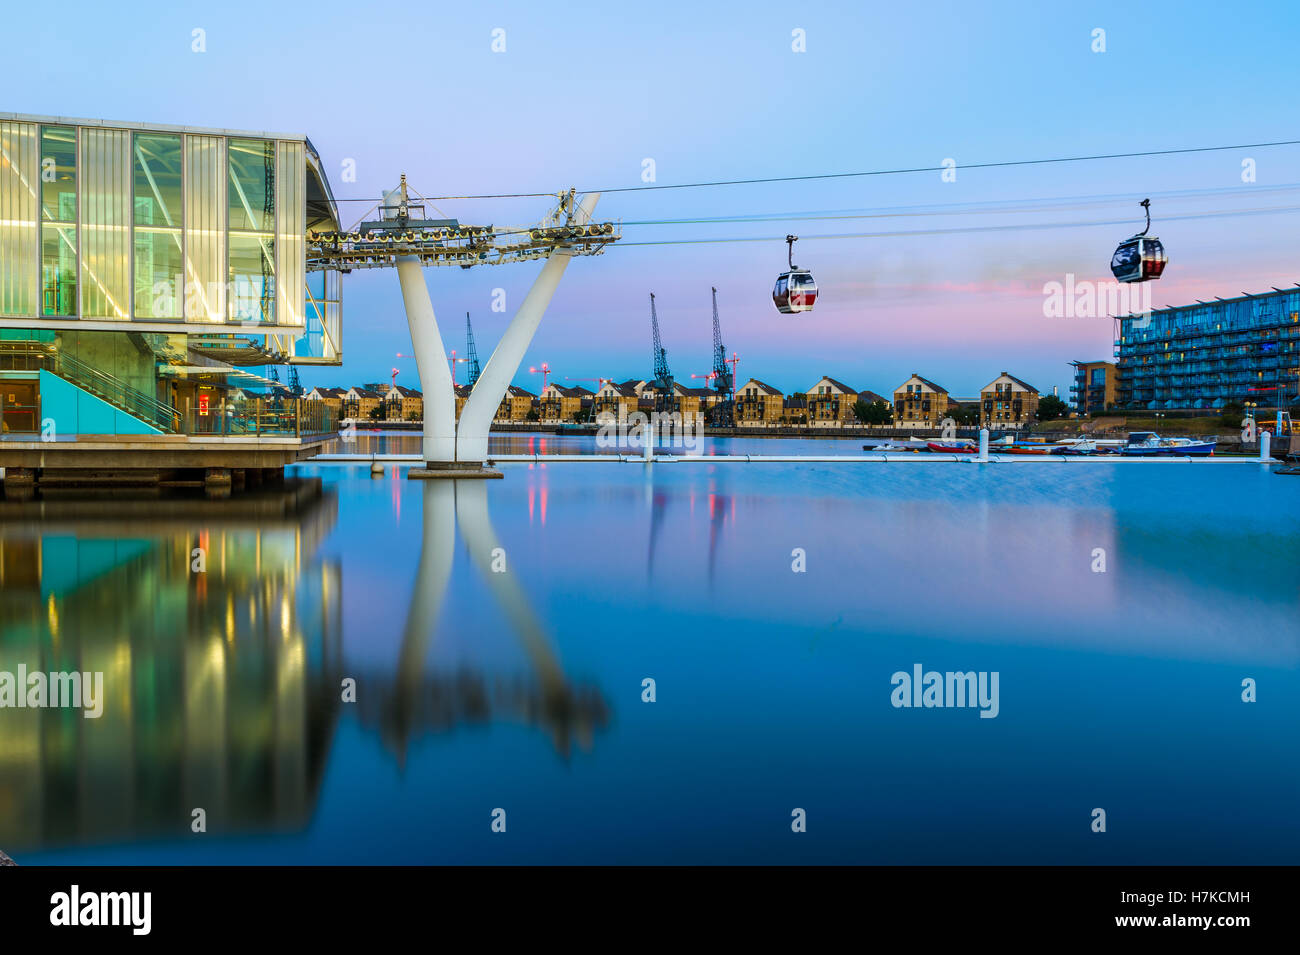 Thames Cable Car at sunset in London - Stock Image